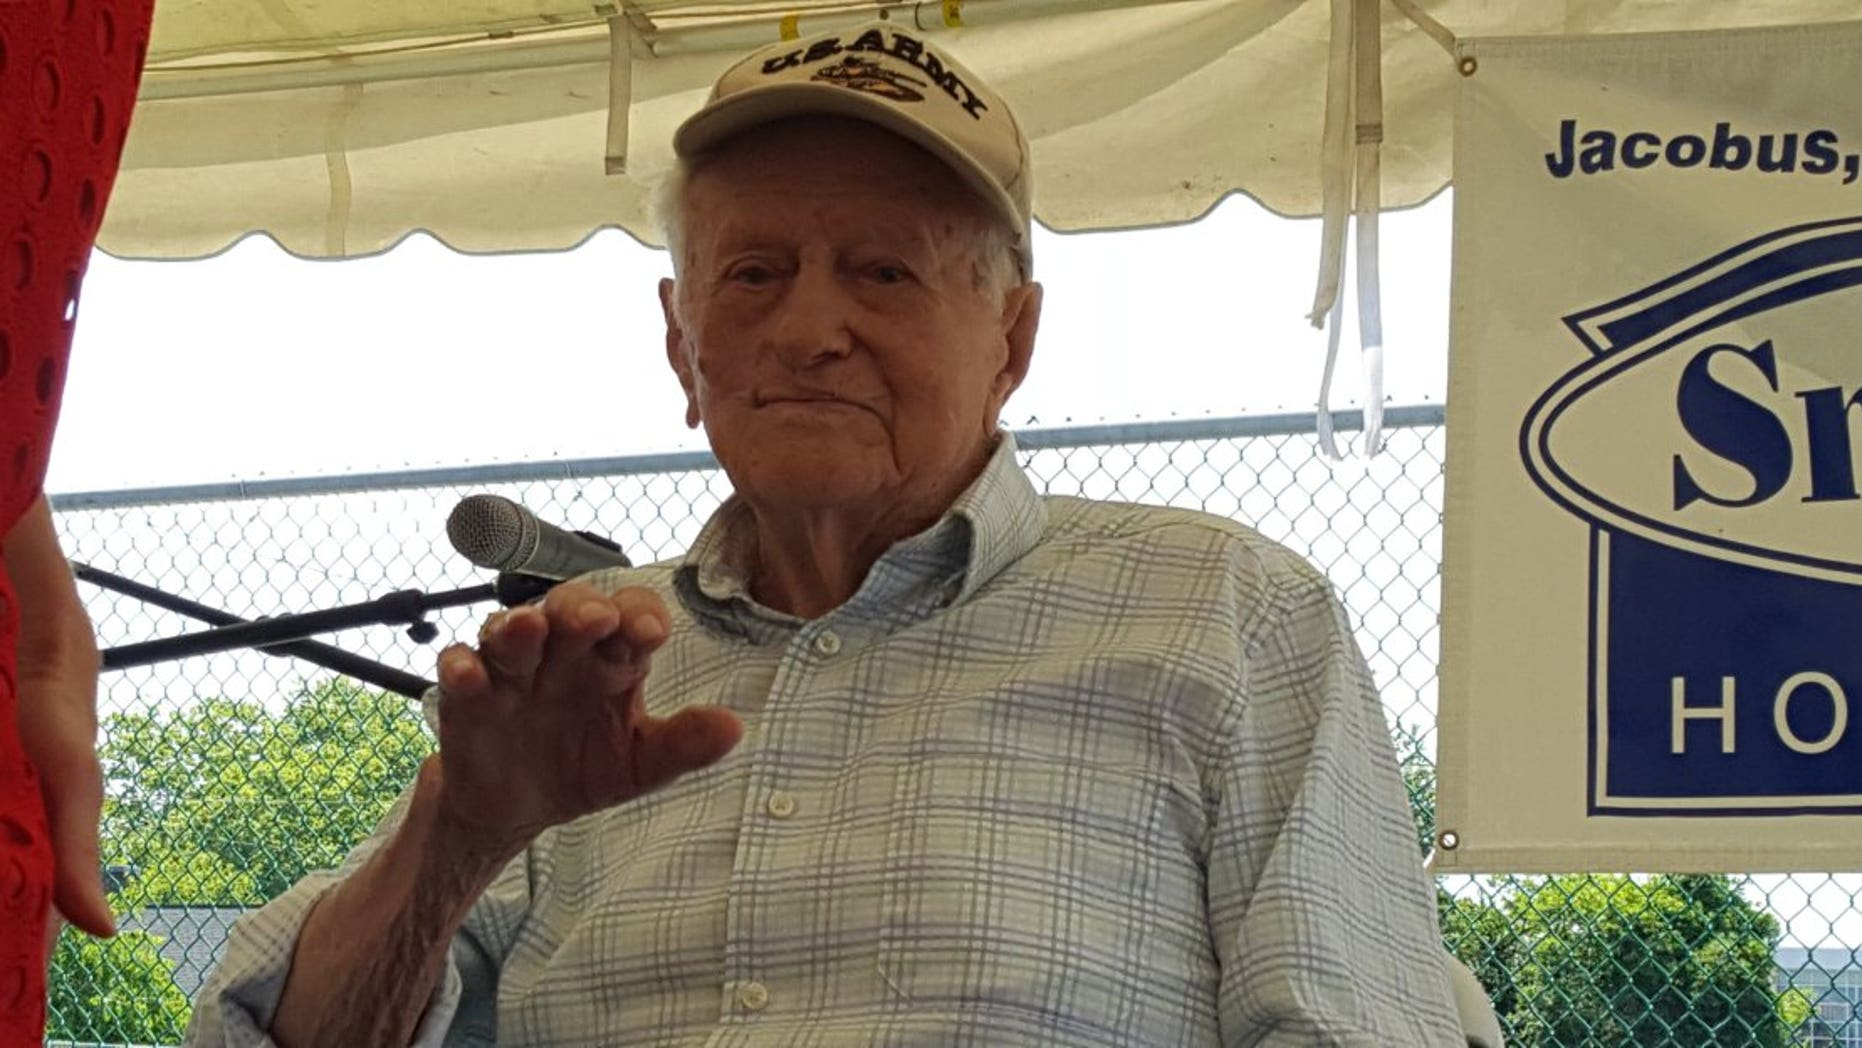 Sam Crane, a Word War II veteran, had his lost medals restored to him in a July 4th ceremony.